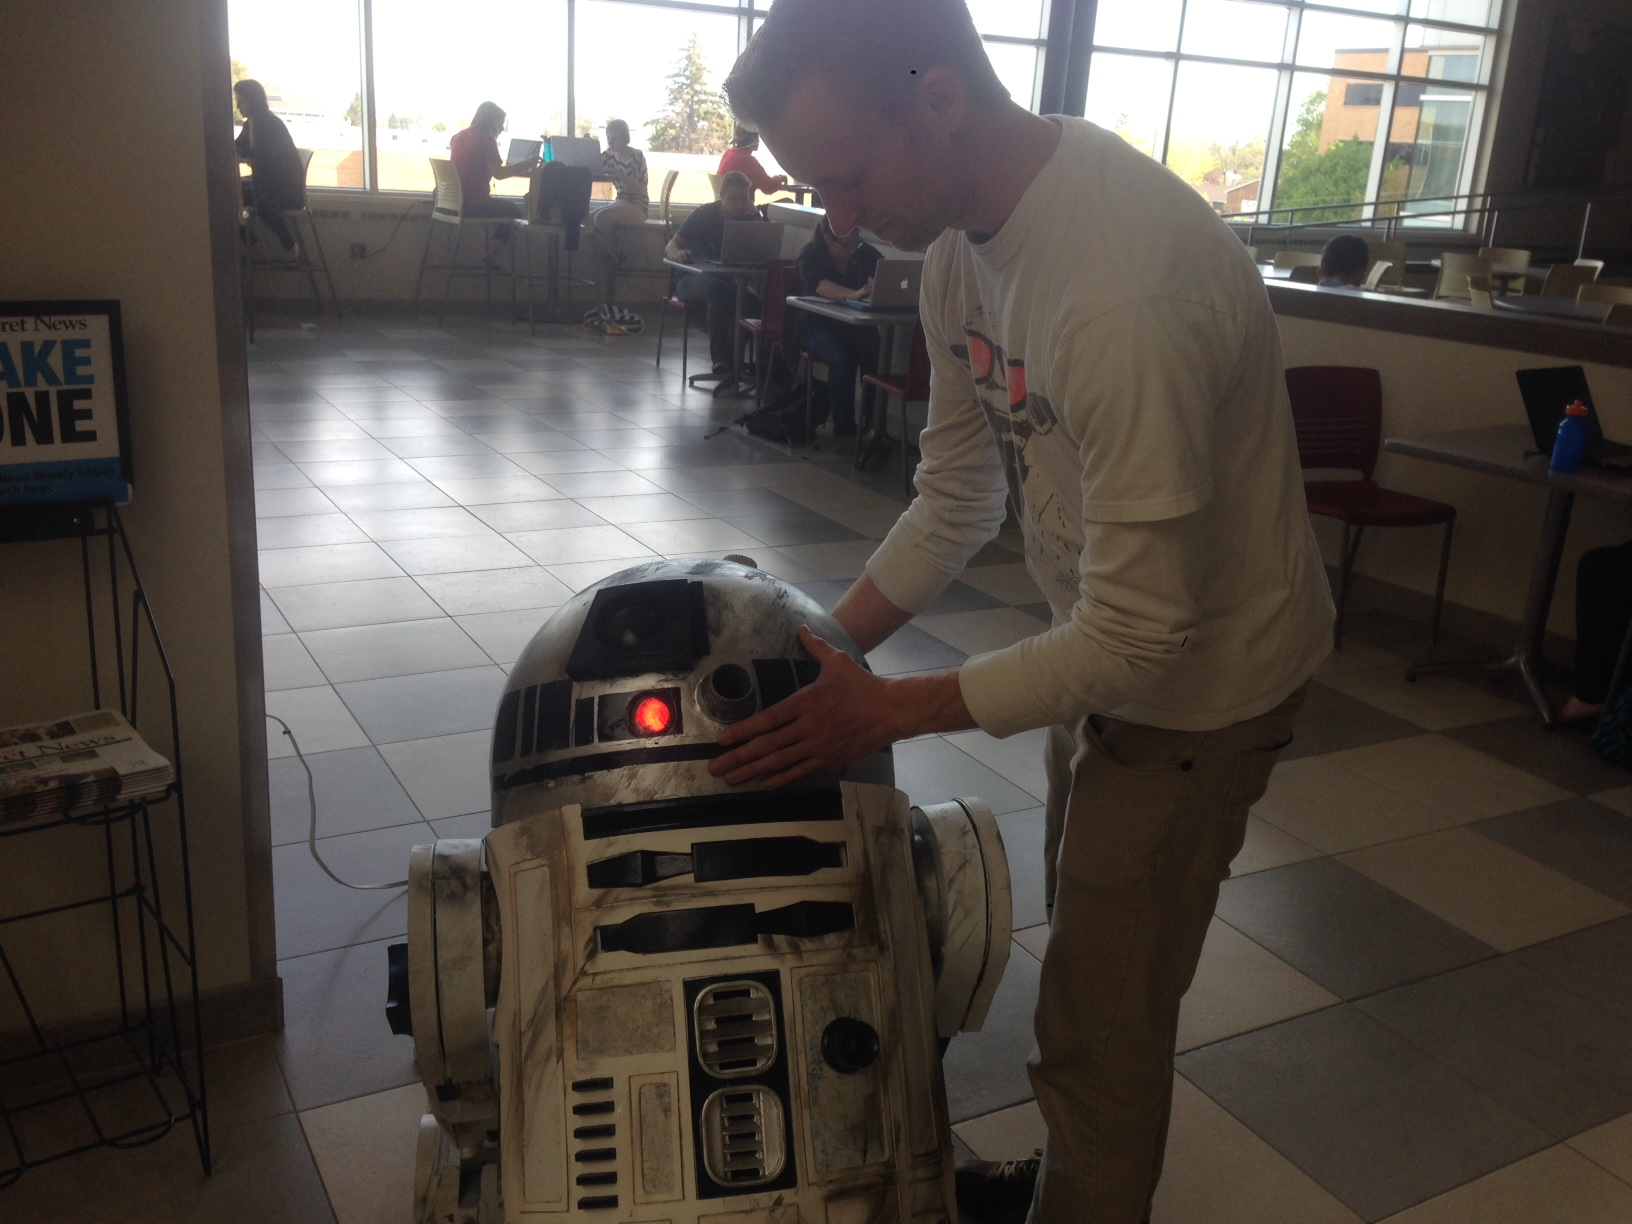 R2D2 Spotted at the Hyrum Manwaring Student Center